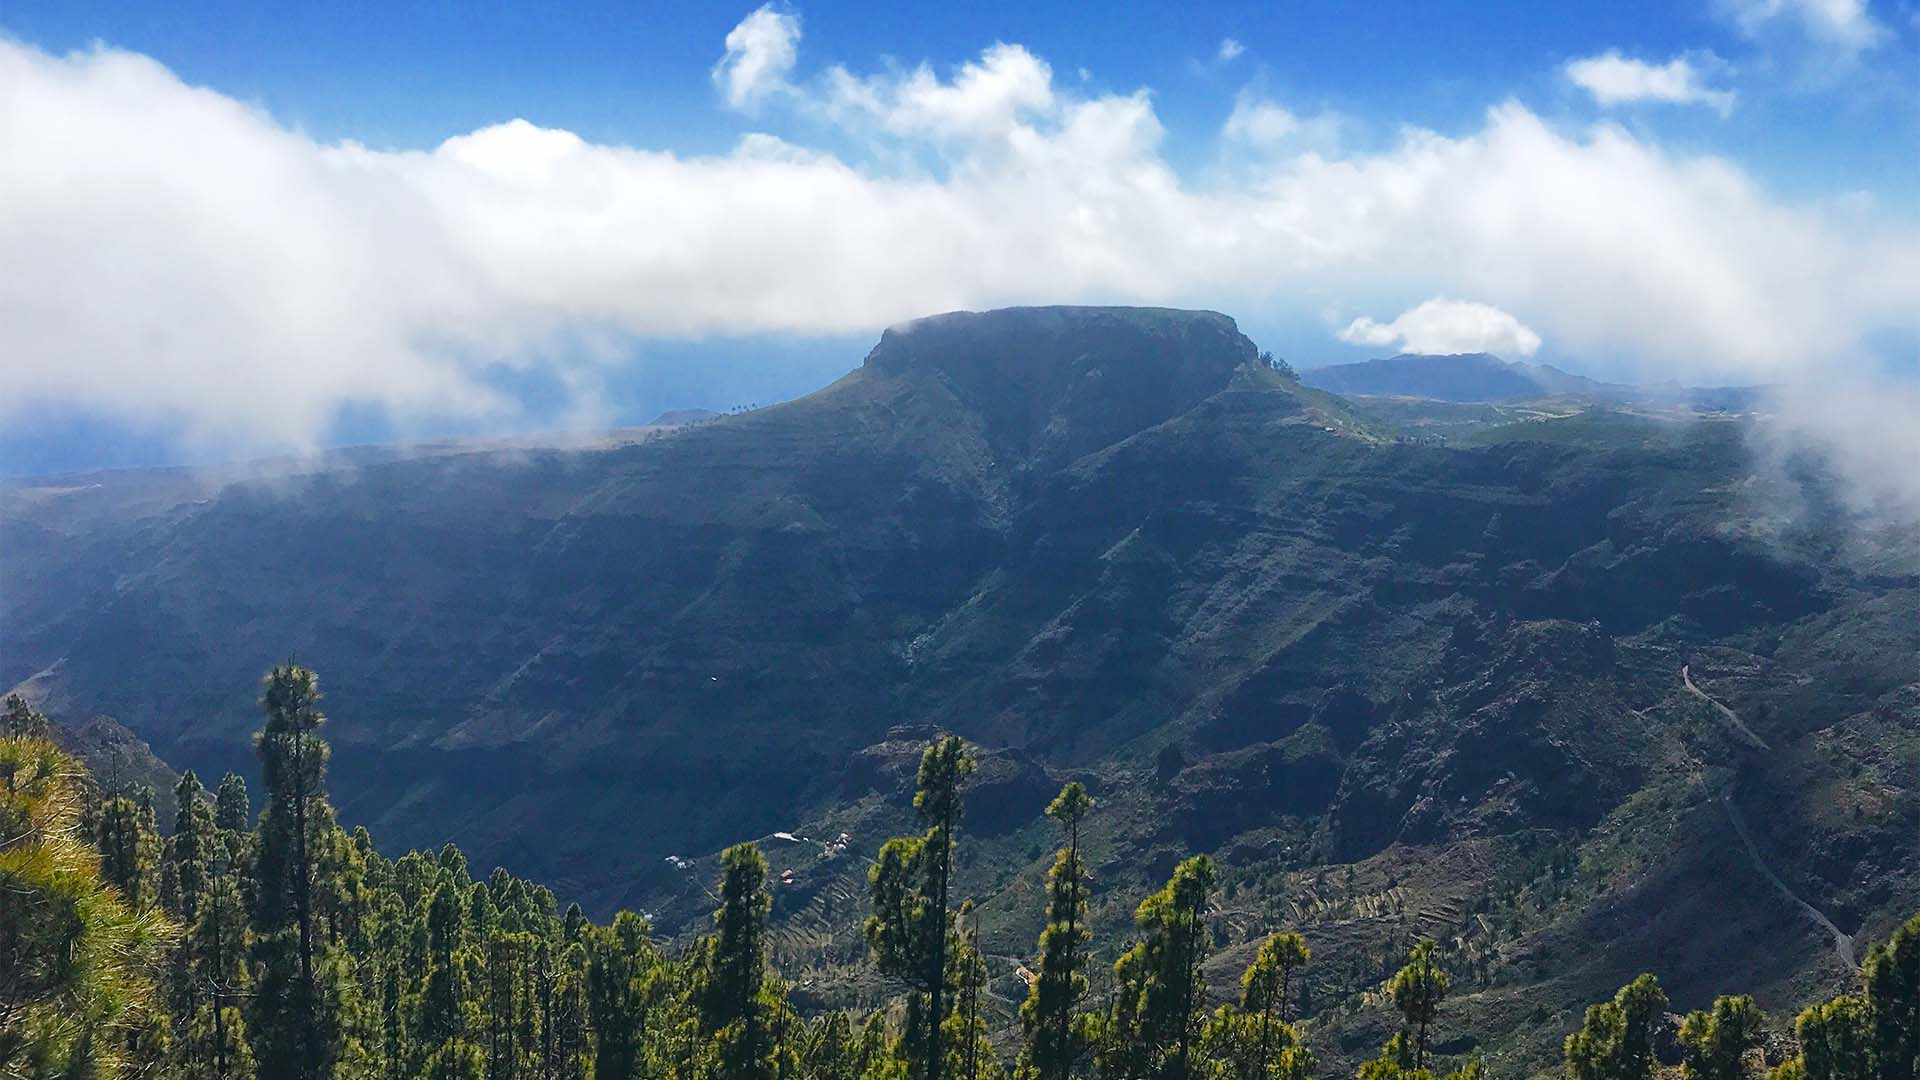 View from Mirador de Igualero in La Gomera, Canary Islands